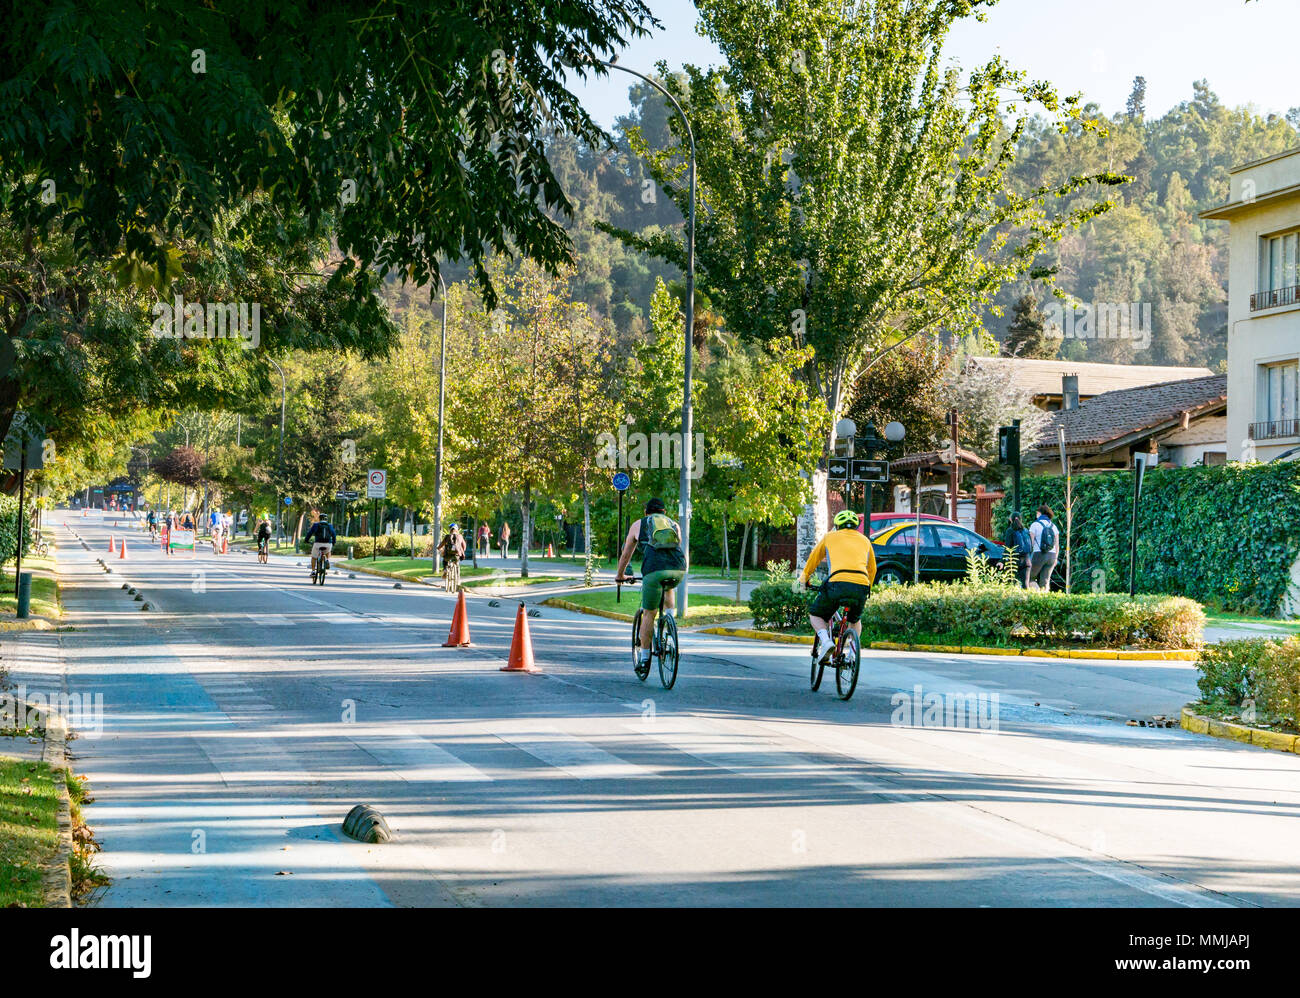 Pedro de Valdivia Street, quiet on Easter Sunday and closed to cars for public recreation with cyclists in street - Stock Image